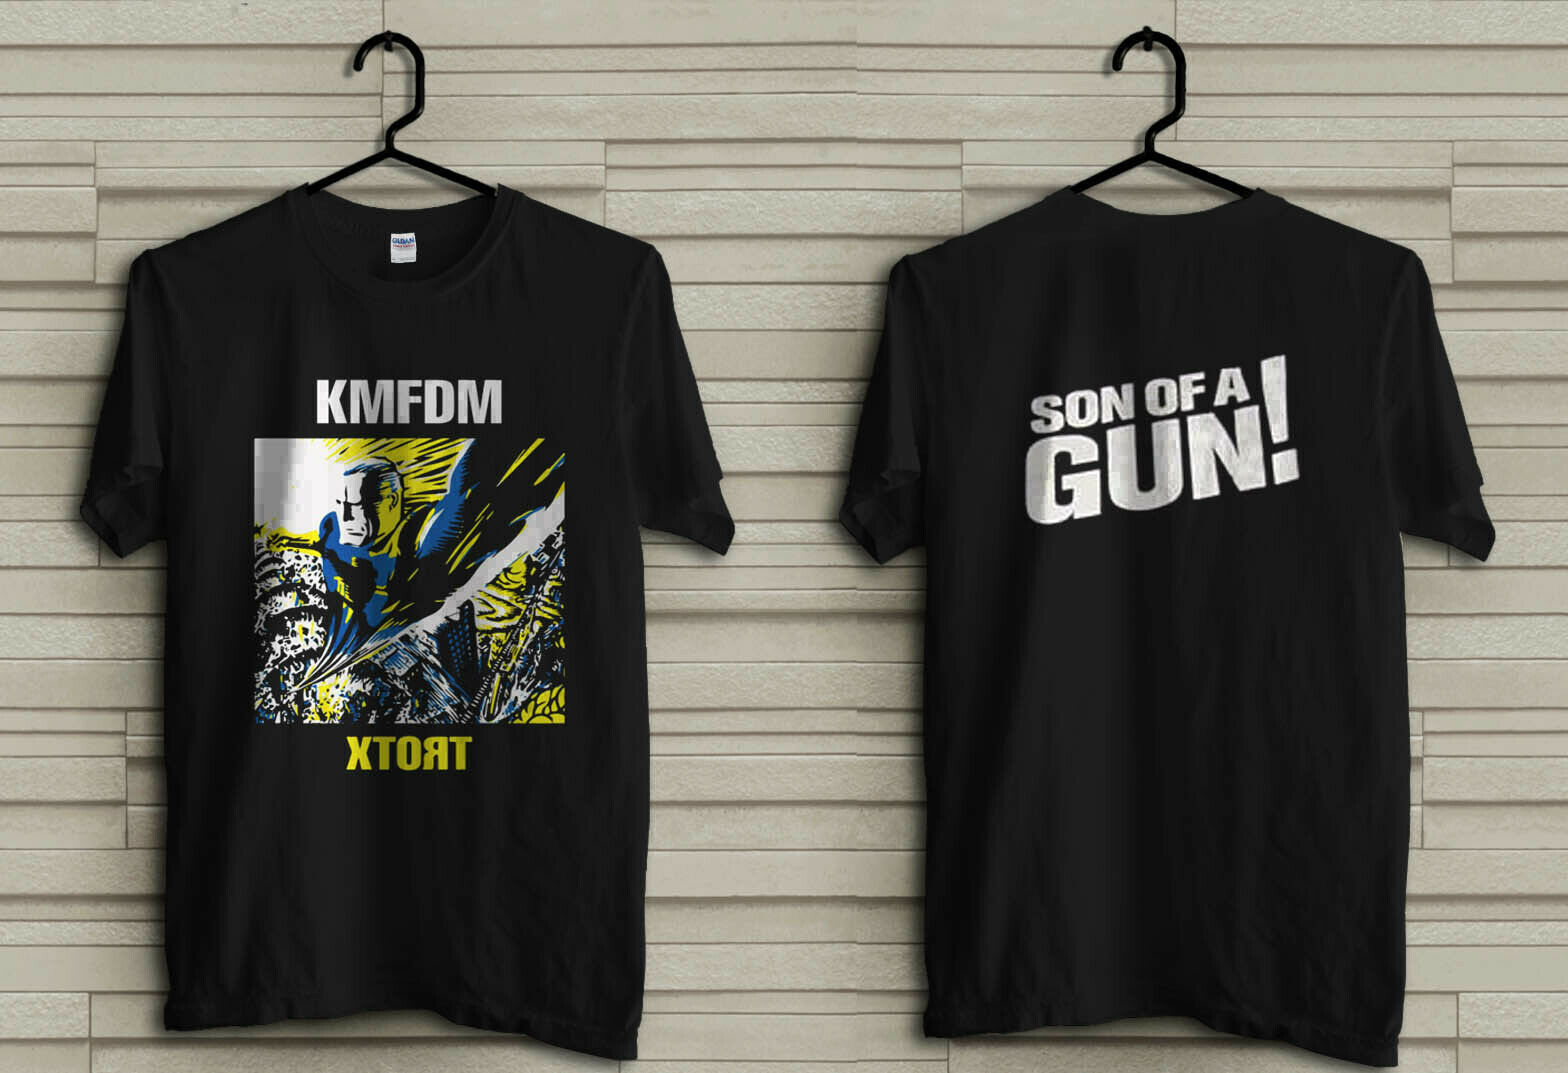 KMFDM XTORT NEW BLACK T SHIRT Printed T-Shirt Pure Cotton Men Top Tee